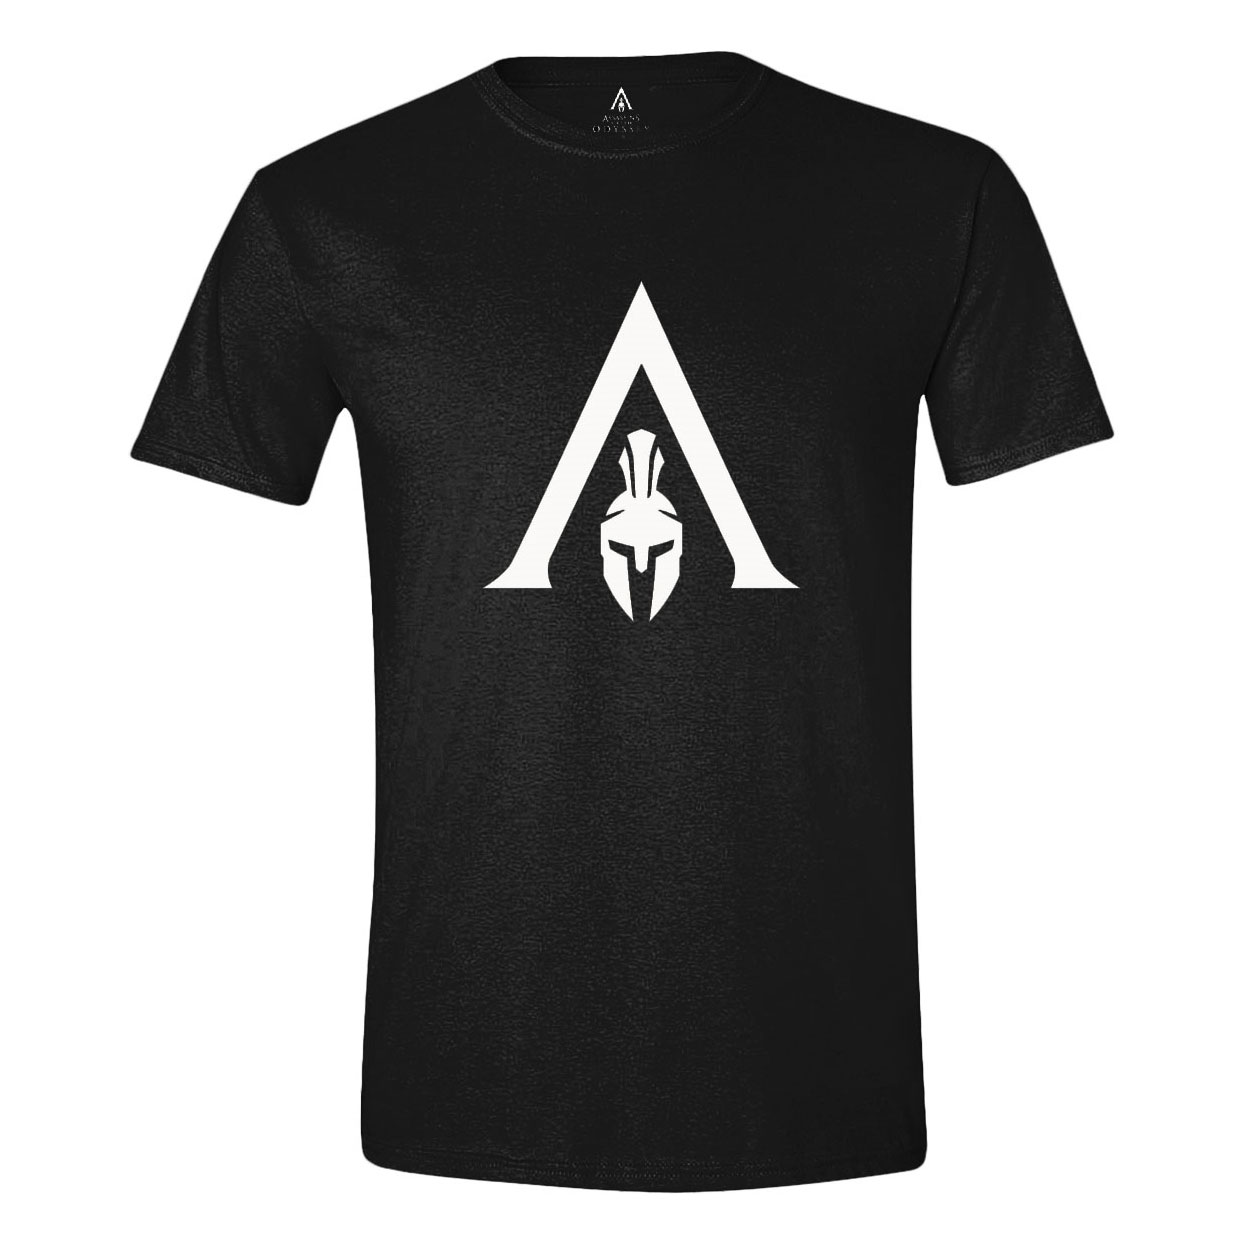 Assassin's Creed Odyssey T-Shirt White Logo Size S